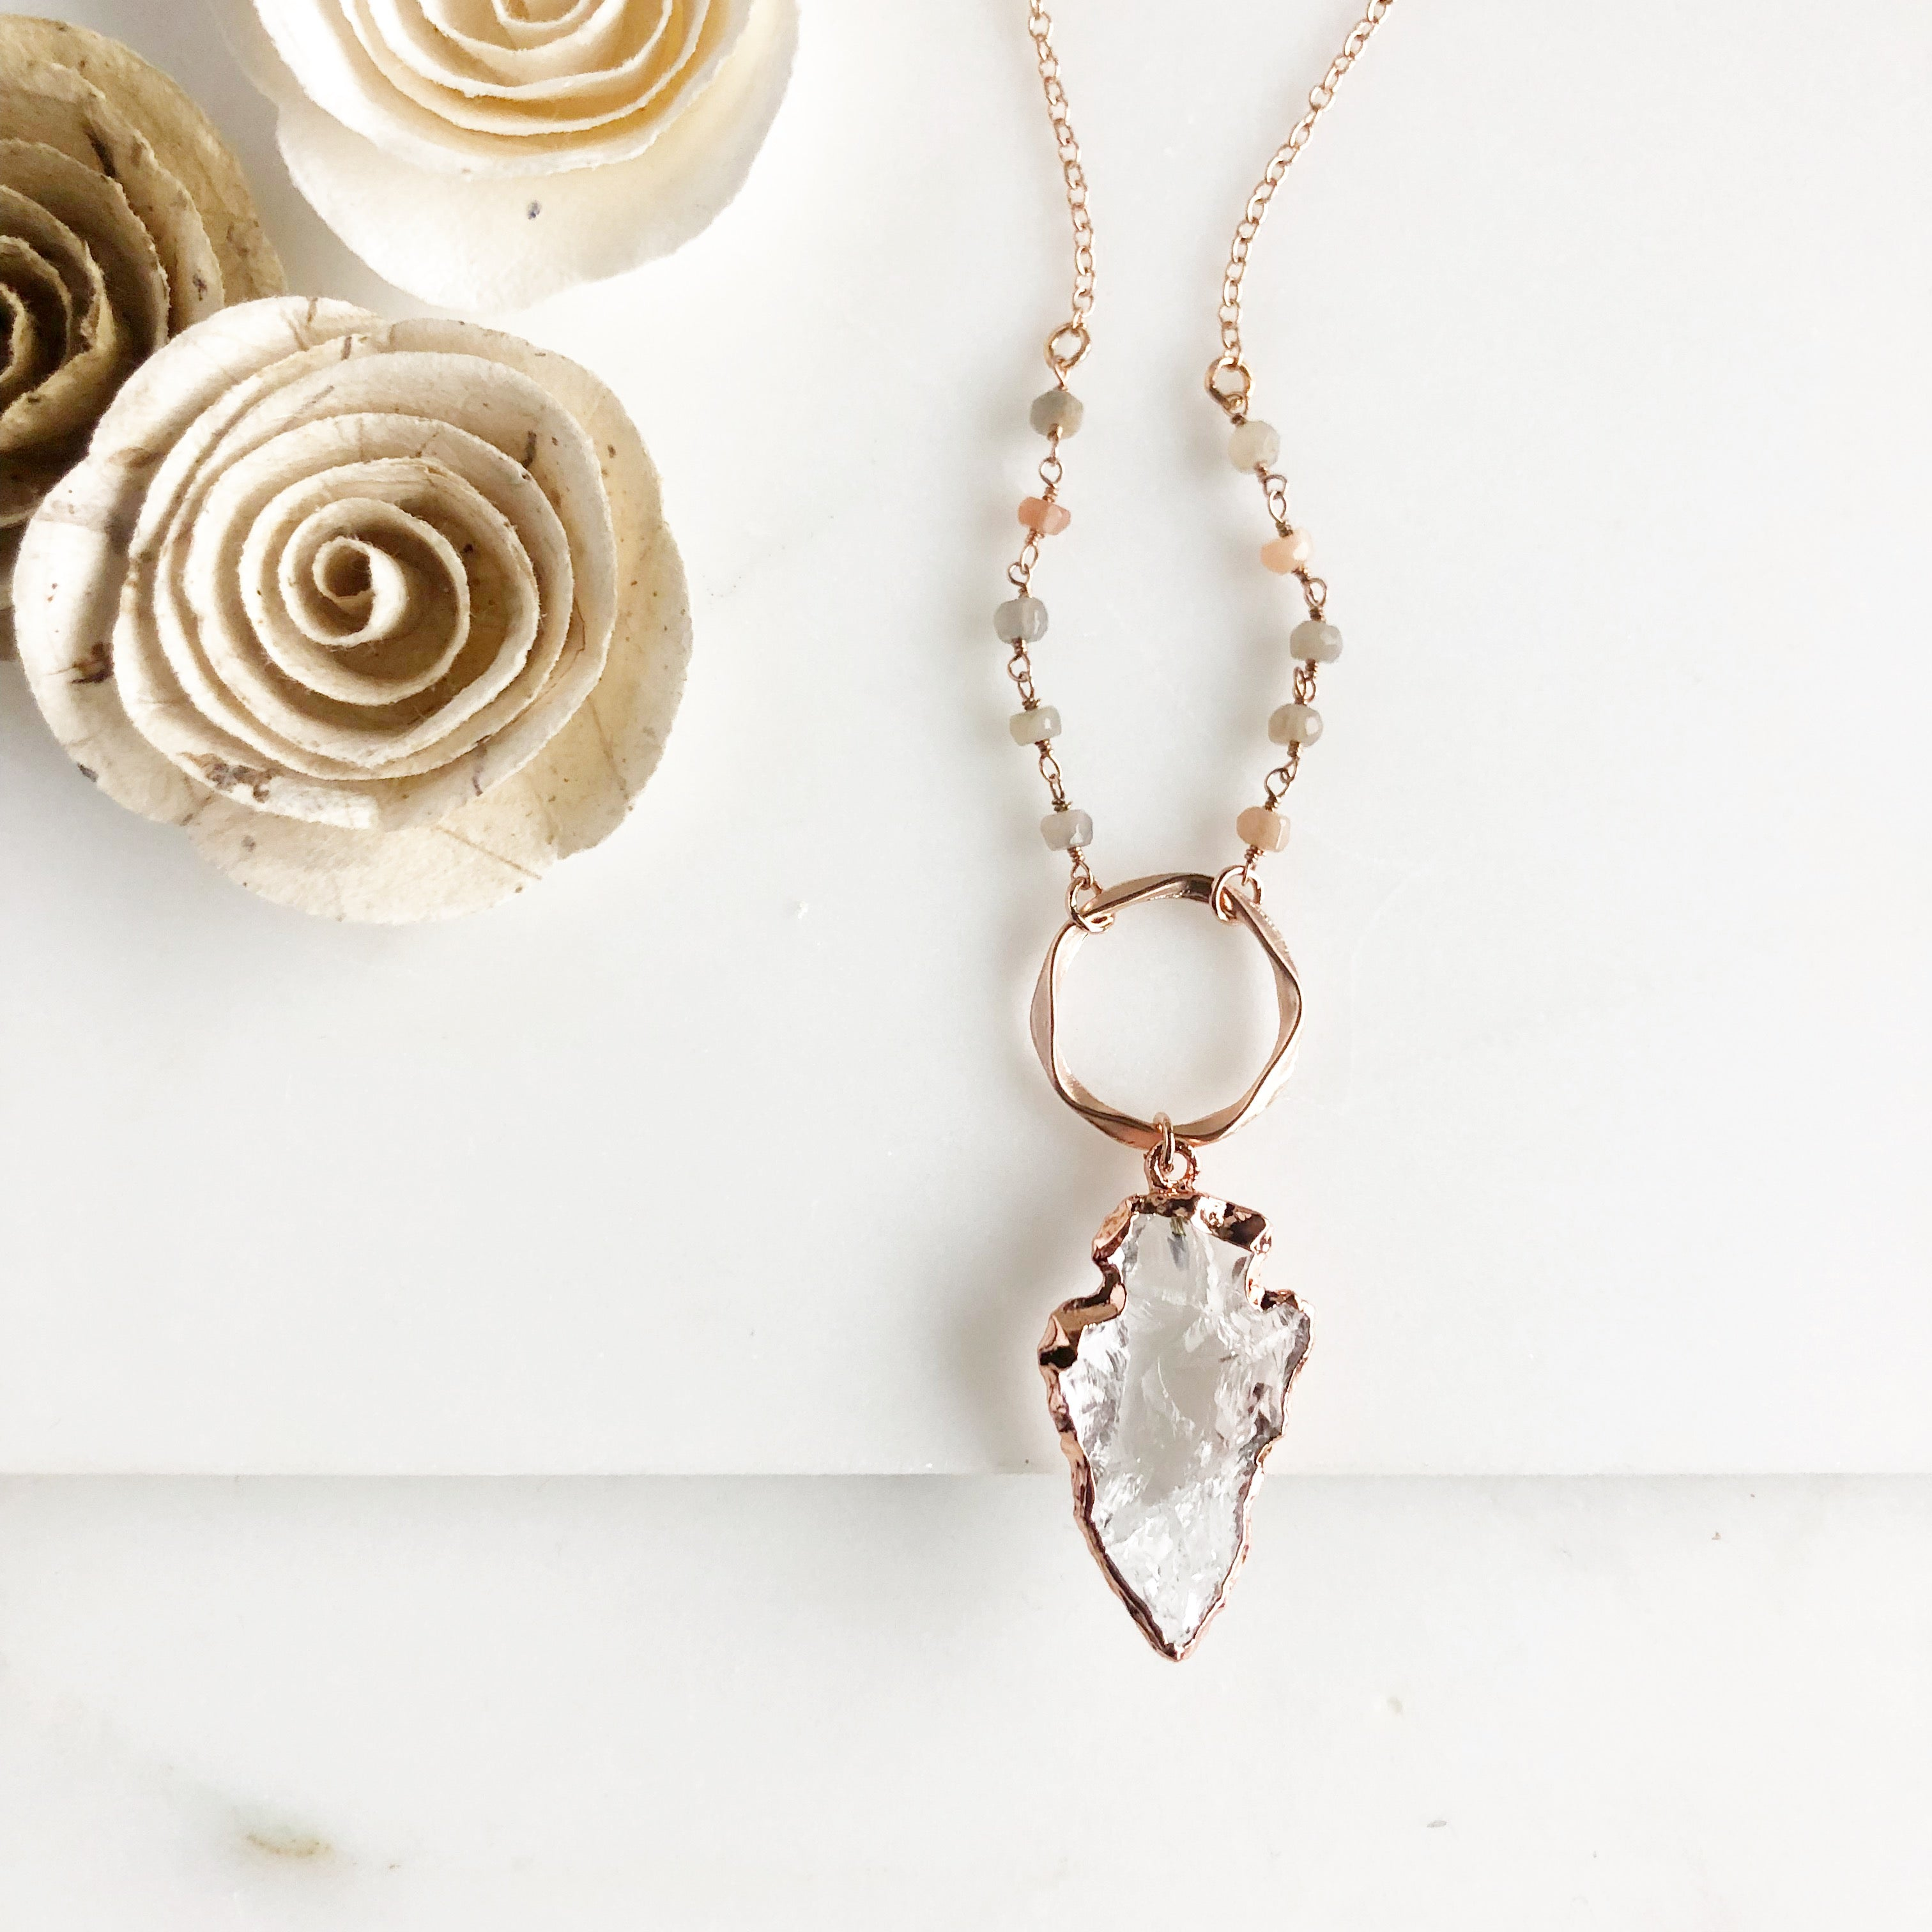 Long Rose Gold Necklace. Rose Gold Necklace with Crystal Arrowhead. Rose Gold Jewelry.